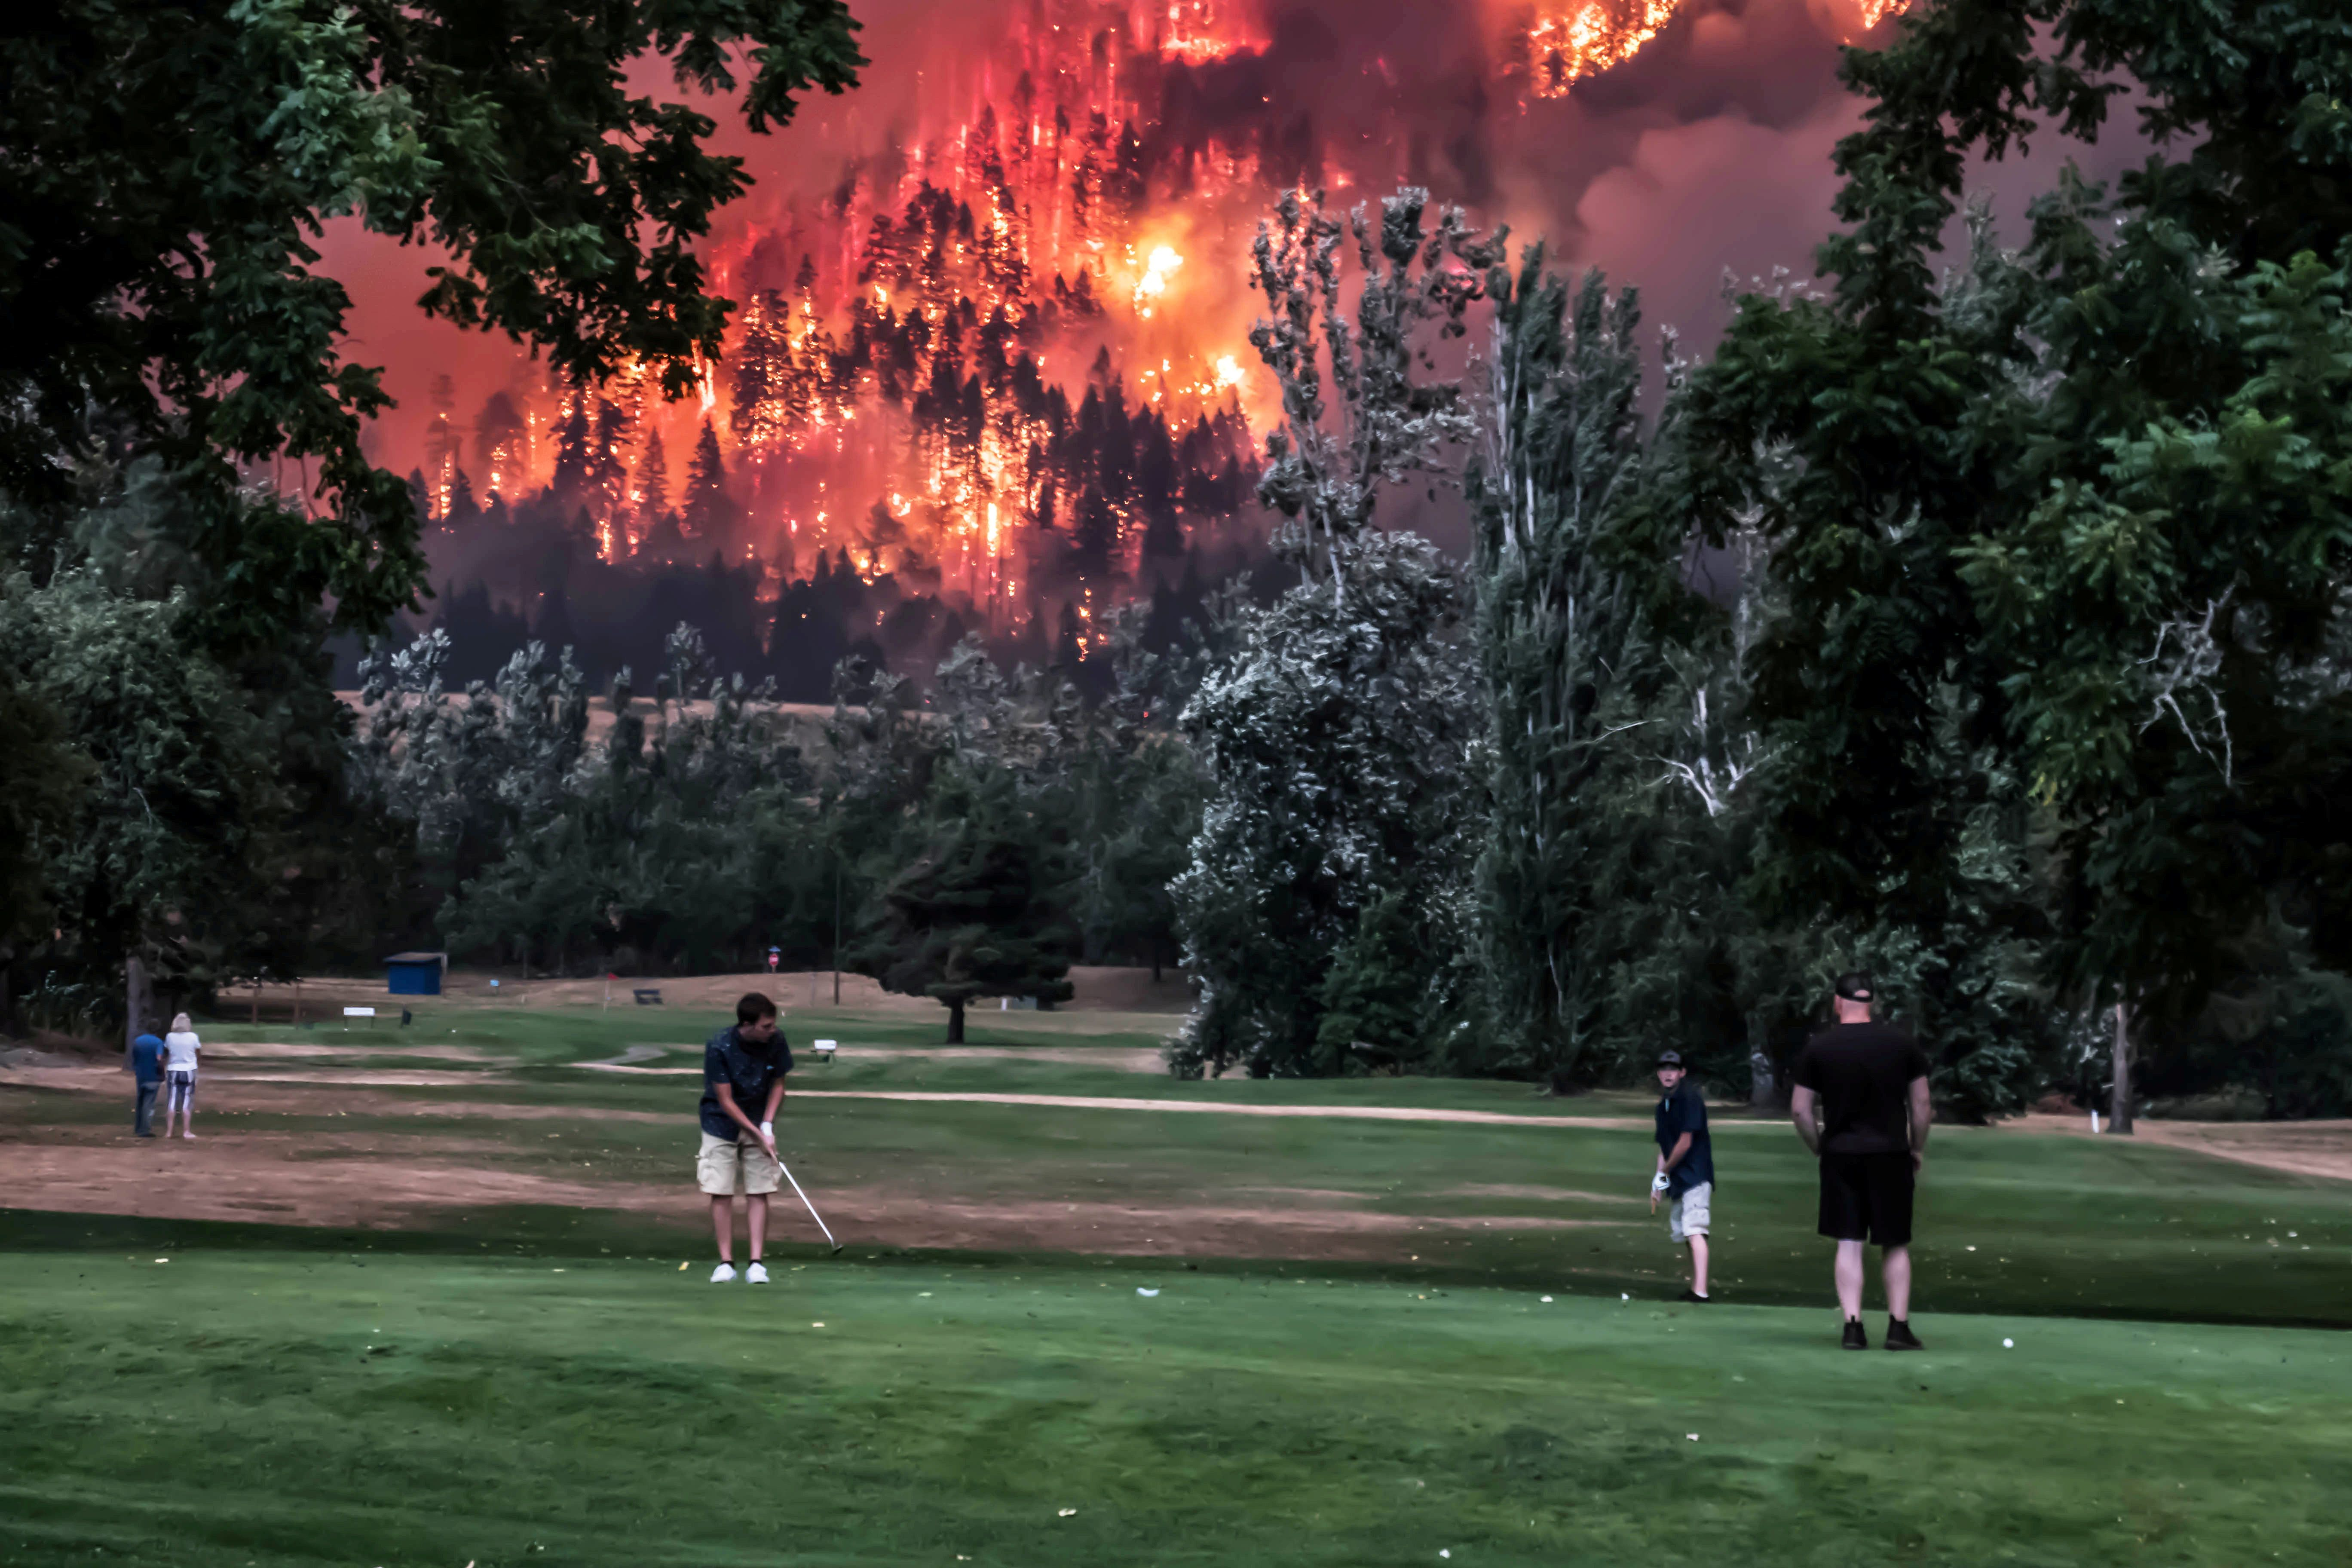 The Eagle Creek wildfire burns as golfers play at the Beacon Rock Golf Course in North Bonneville, Washington, on September 4